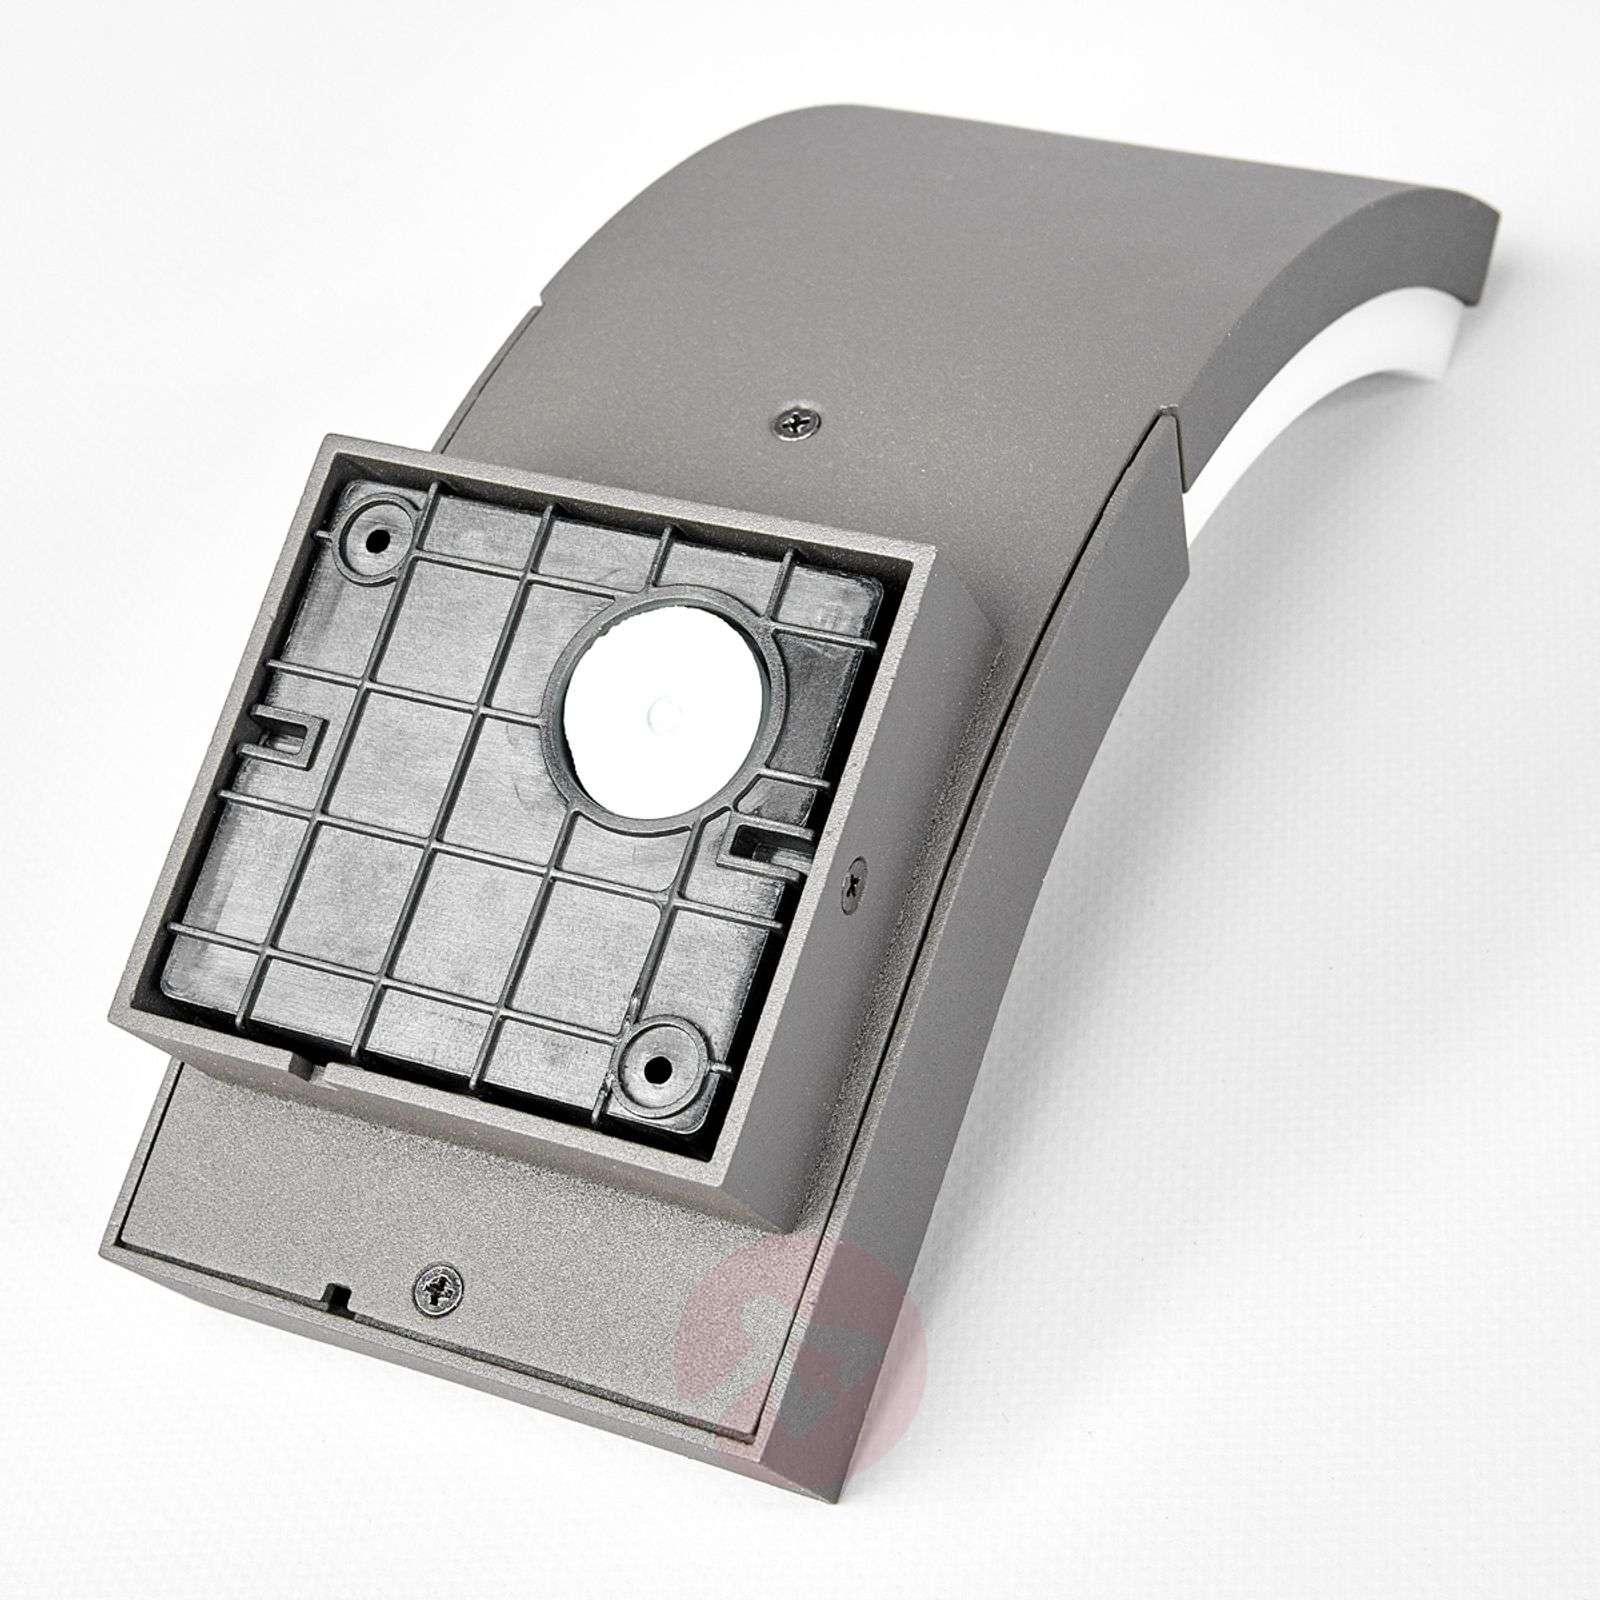 Led Outdoor Wall Light Timm With Motion Detector